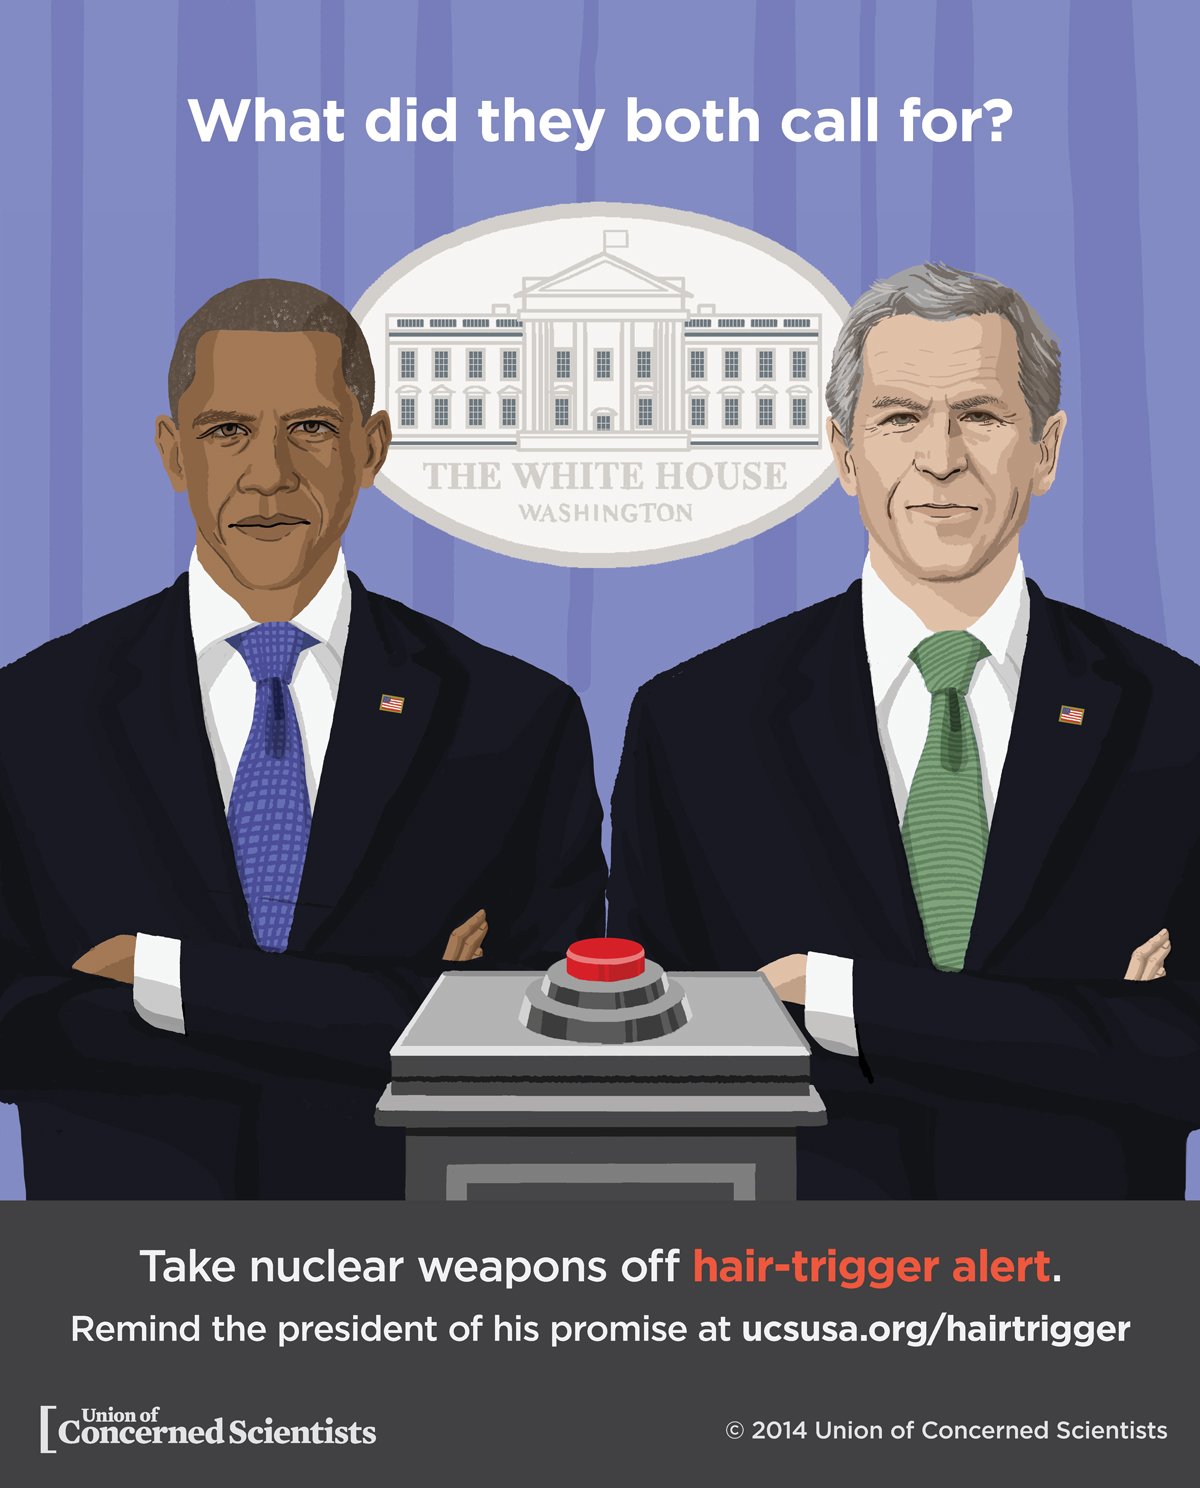 Presidents agree on hair-trigger alert.